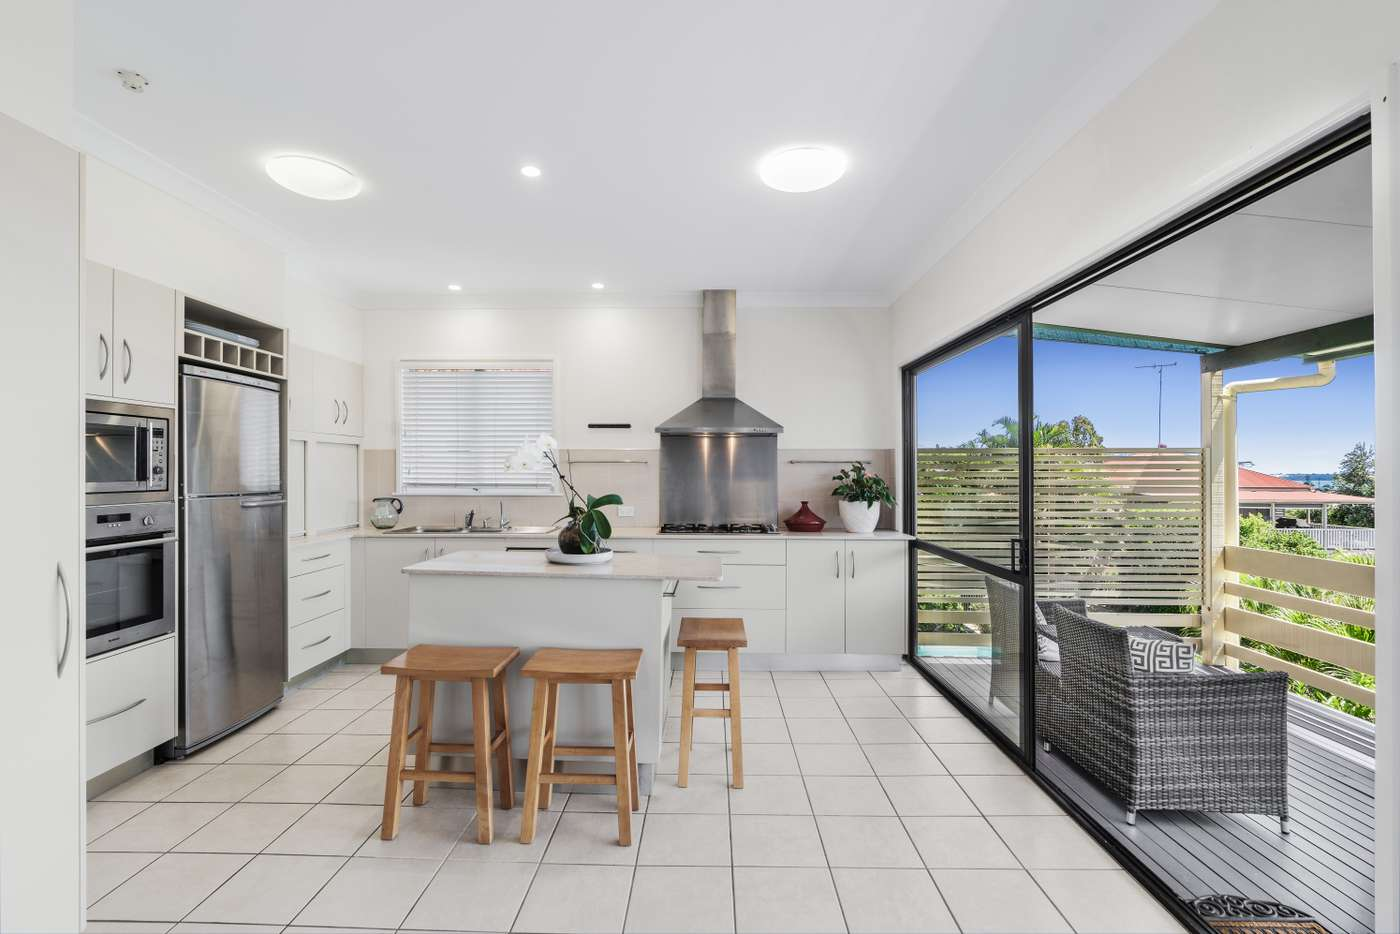 Fifth view of Homely house listing, 74 Melville Terrace, Wynnum QLD 4178